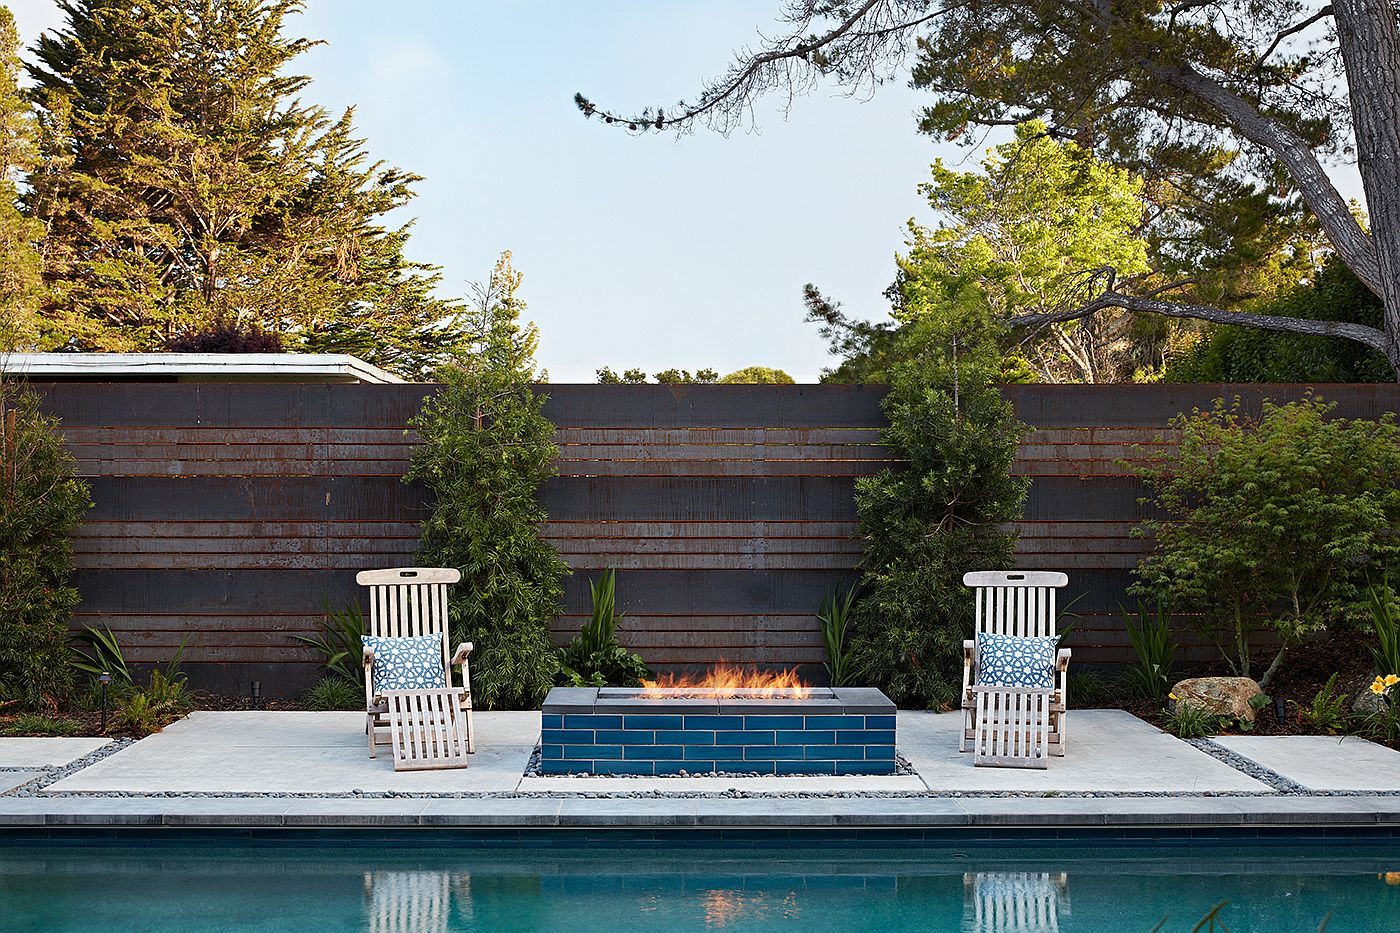 Simple hangout next to the pool with a modern fireplace